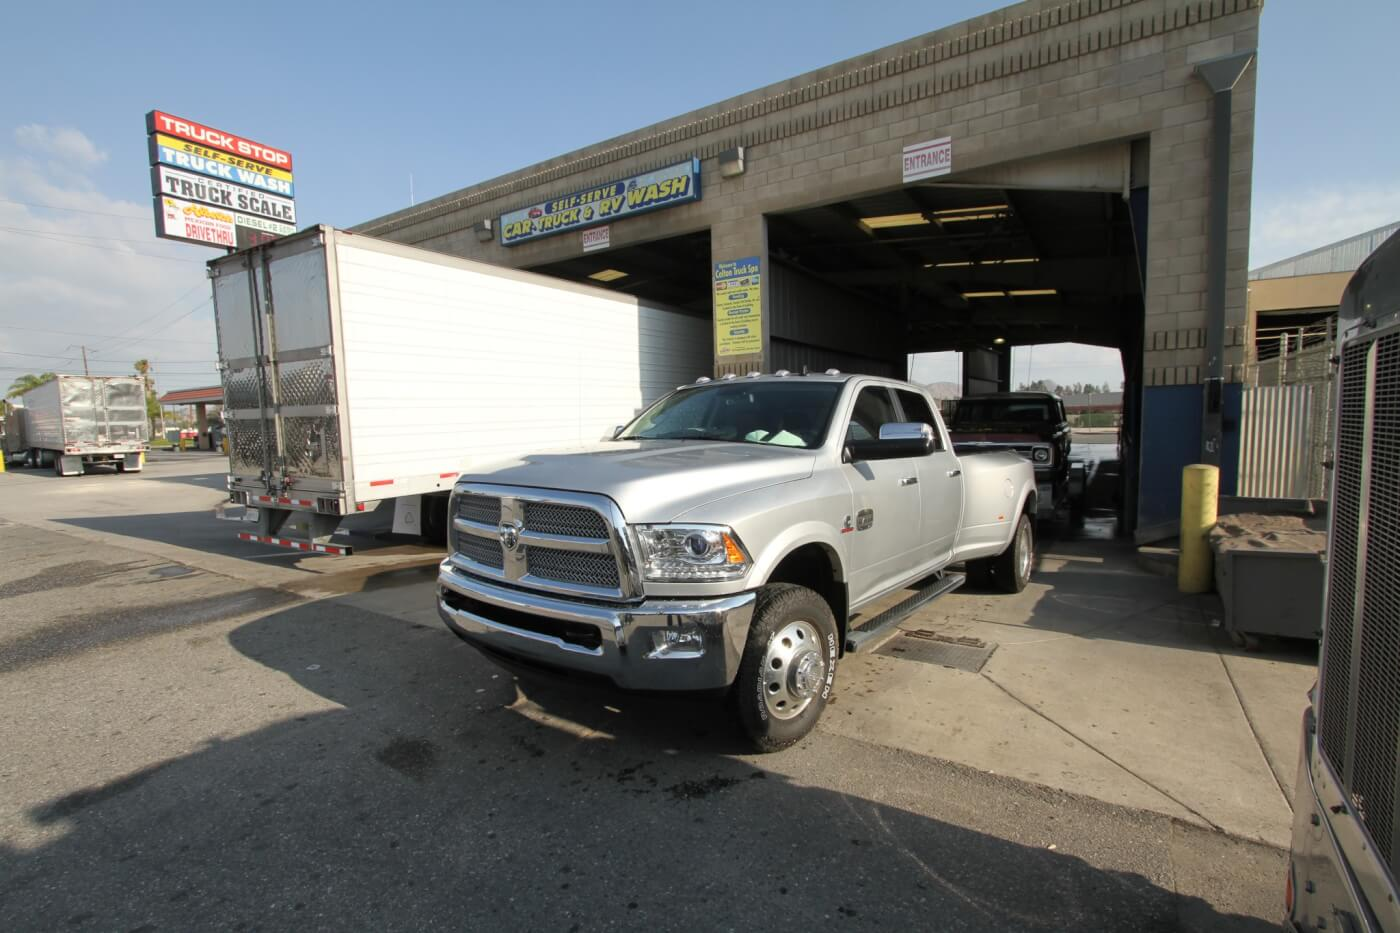 10. Self-wash booths large enough for an 18-wheeler and trailer will also fit your dually pickup and trailer. You'll never get your dually into a drive through car wash.